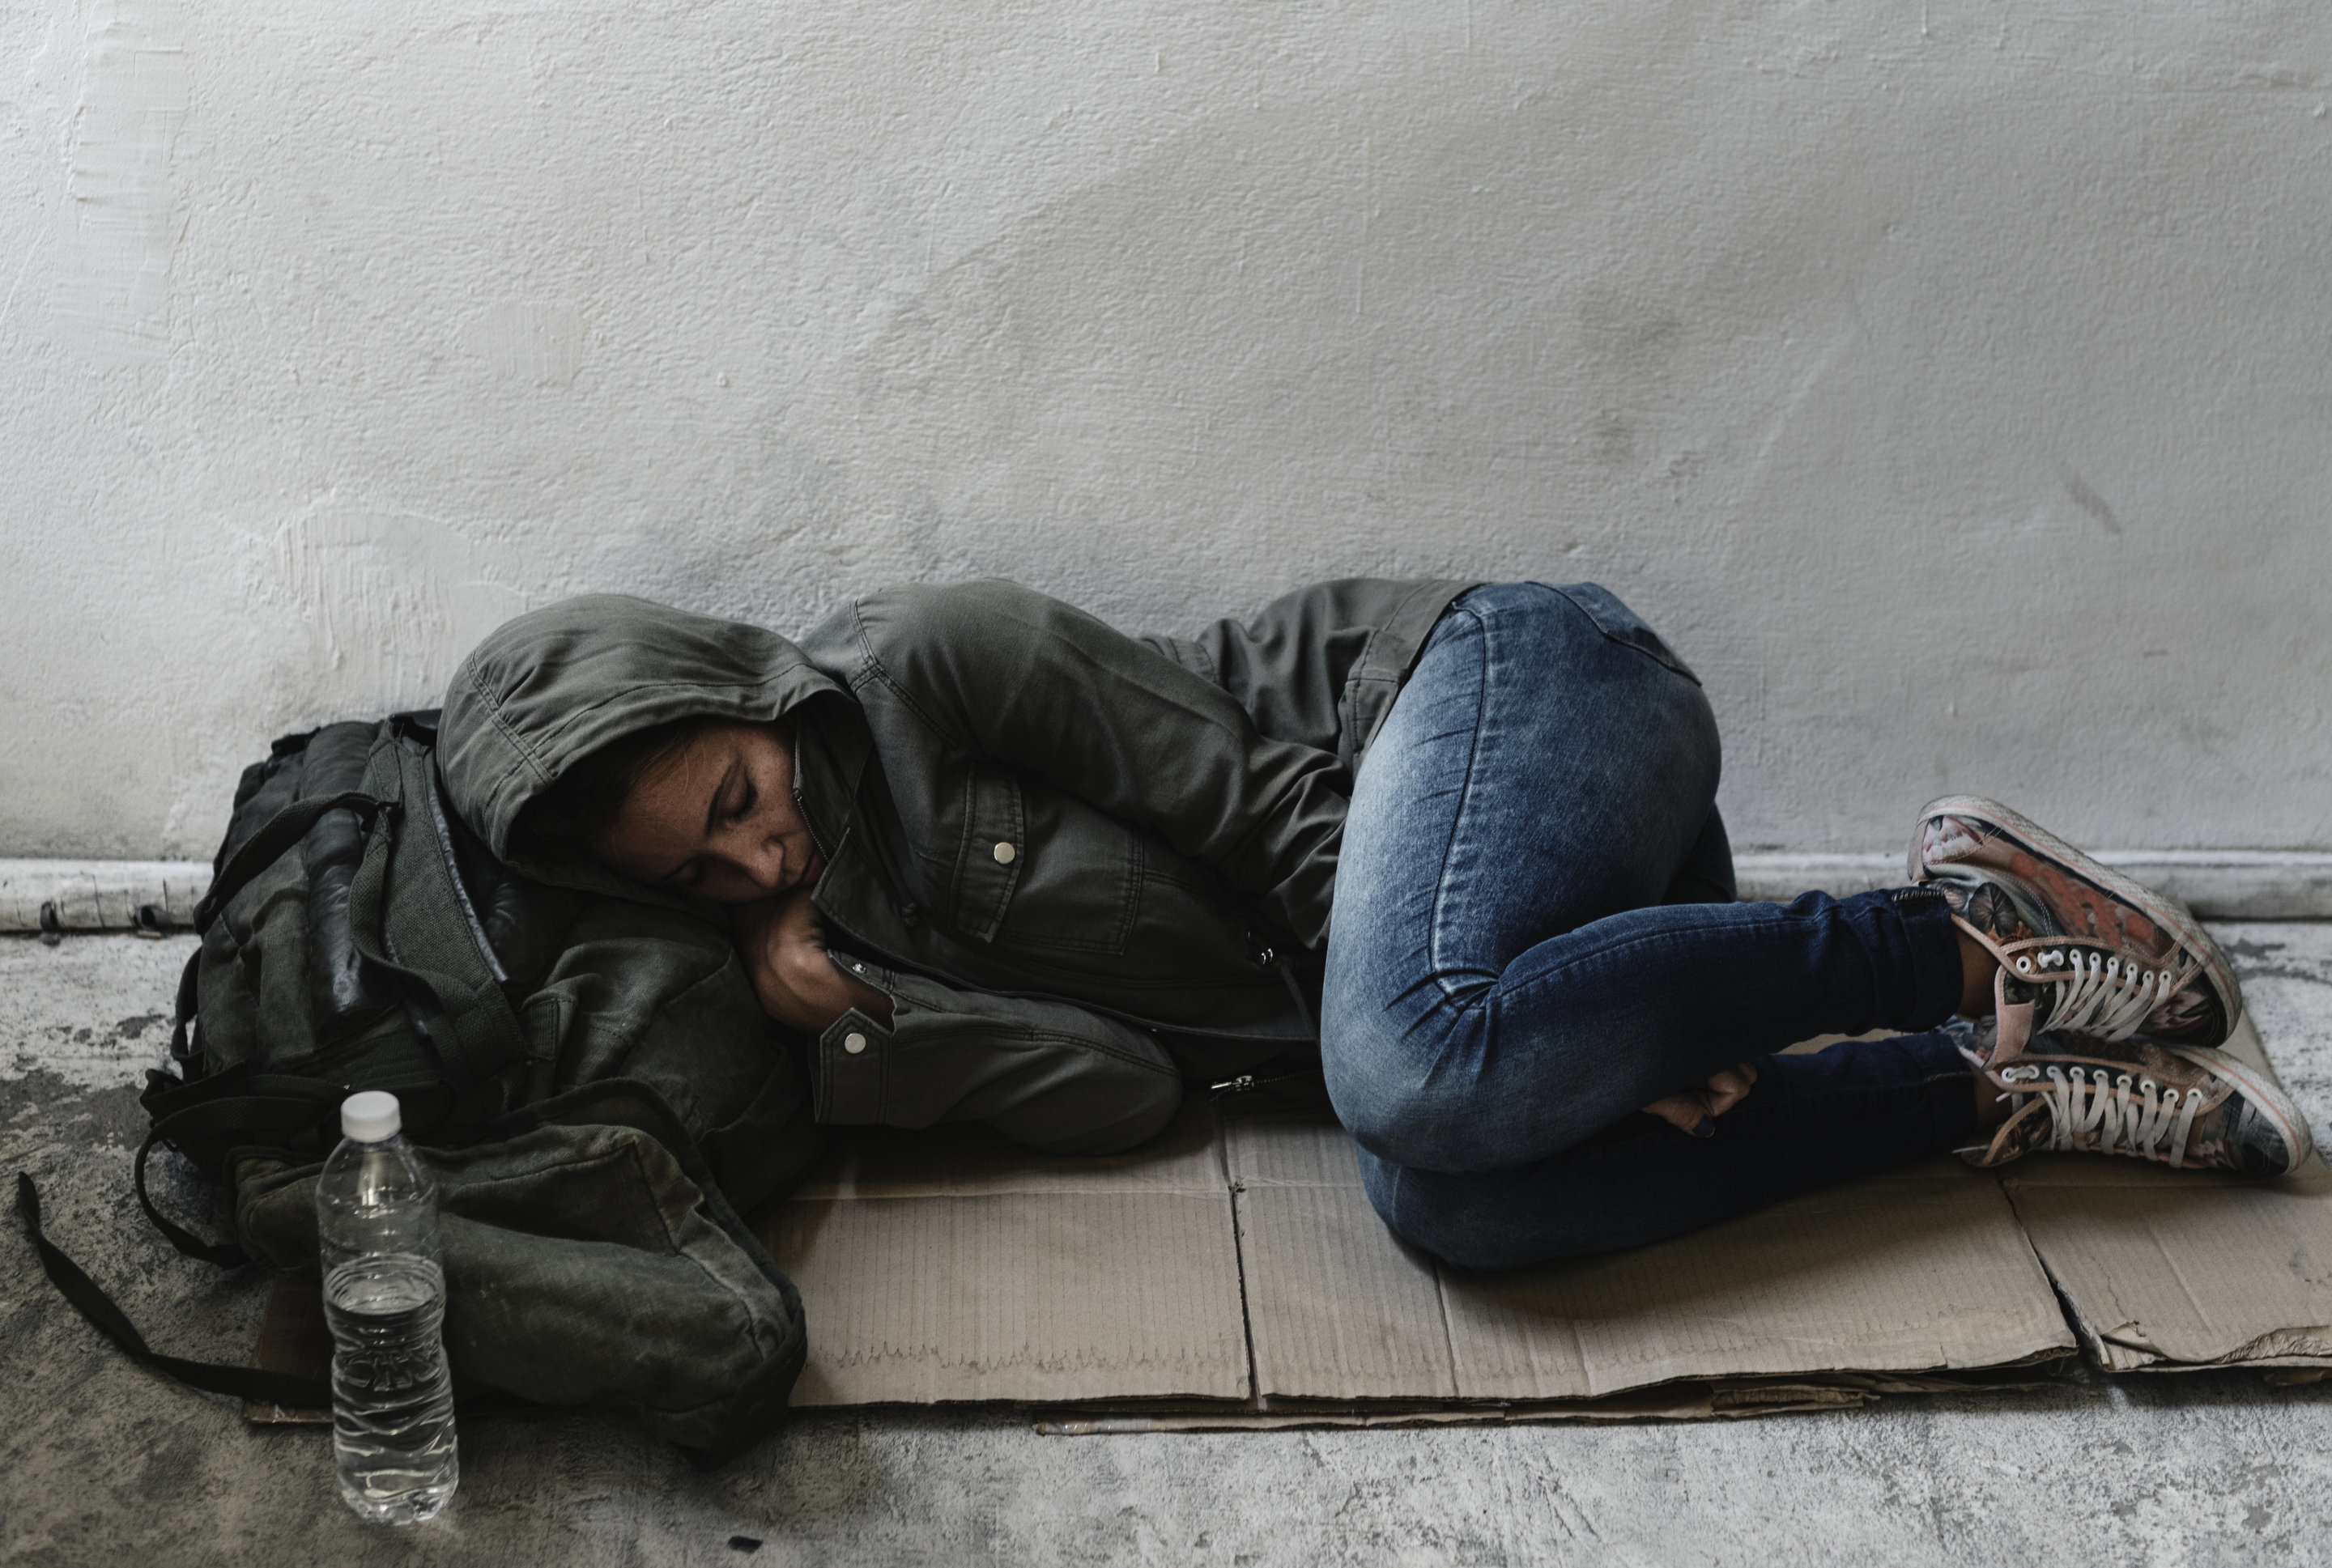 Young, vulnerable homeless women are being exploited for sex